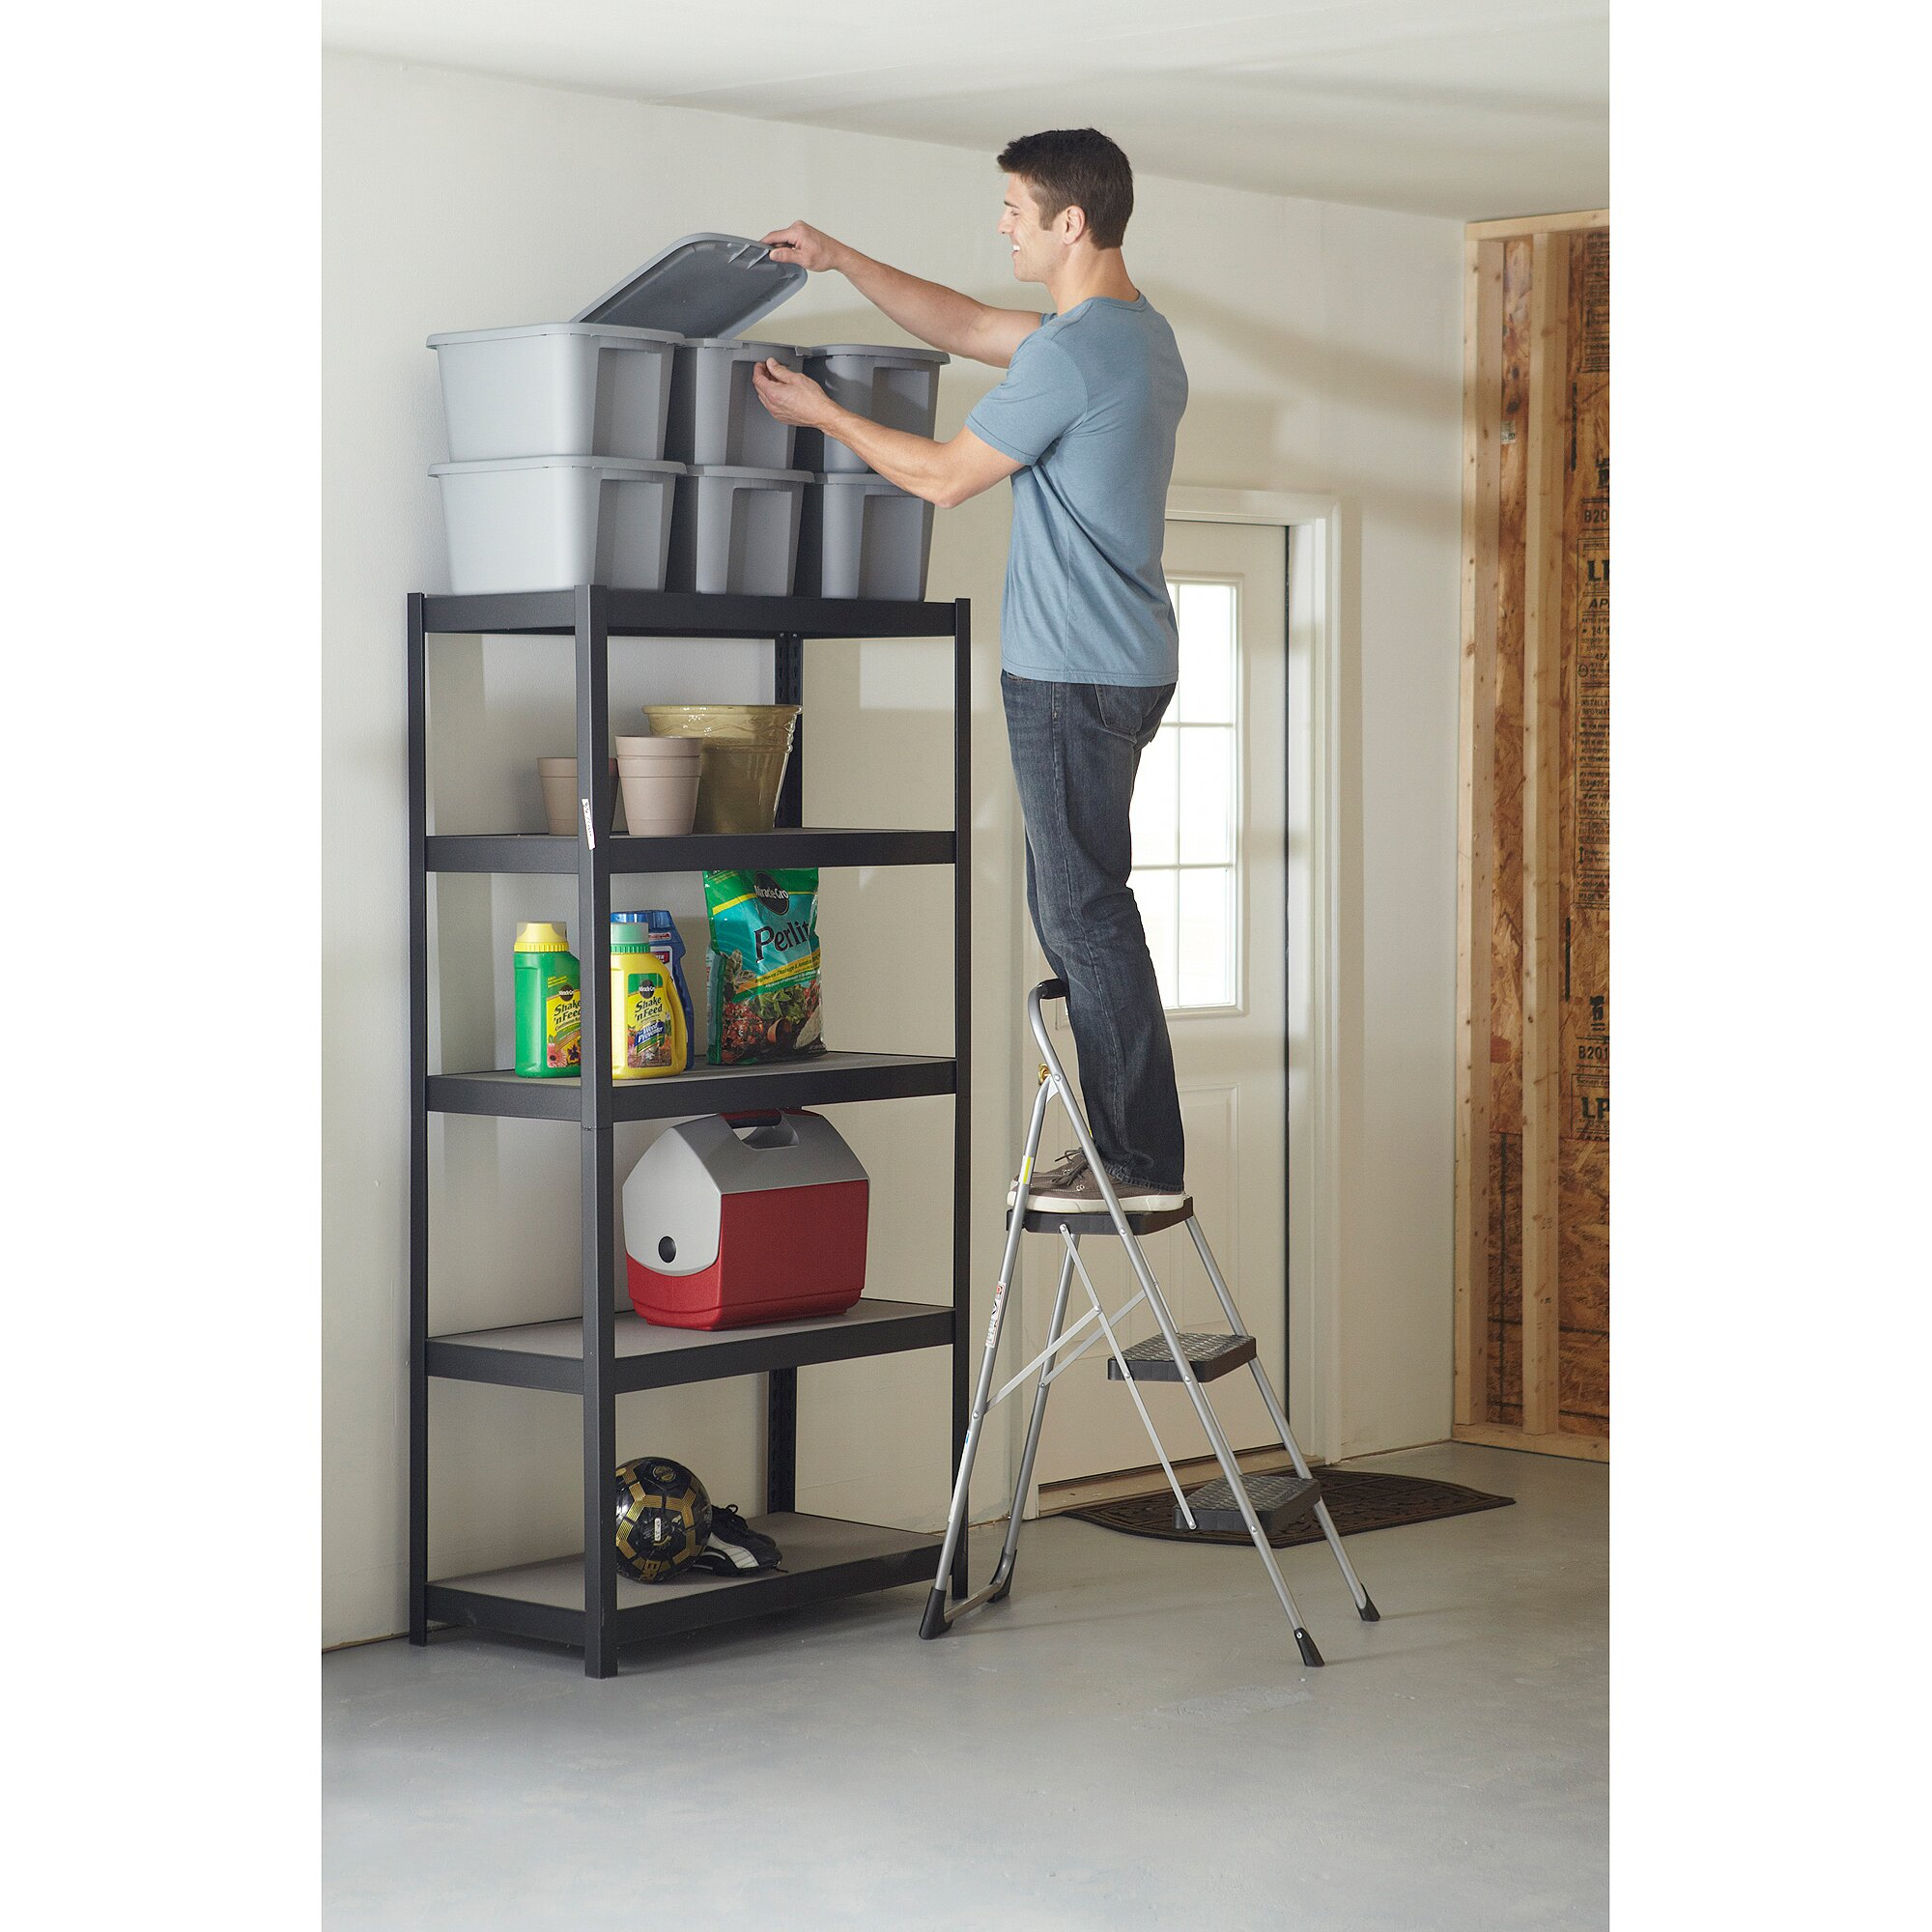 Lowes Folding Ladder | Lowes Step Stool | One Step Folding Step Stool